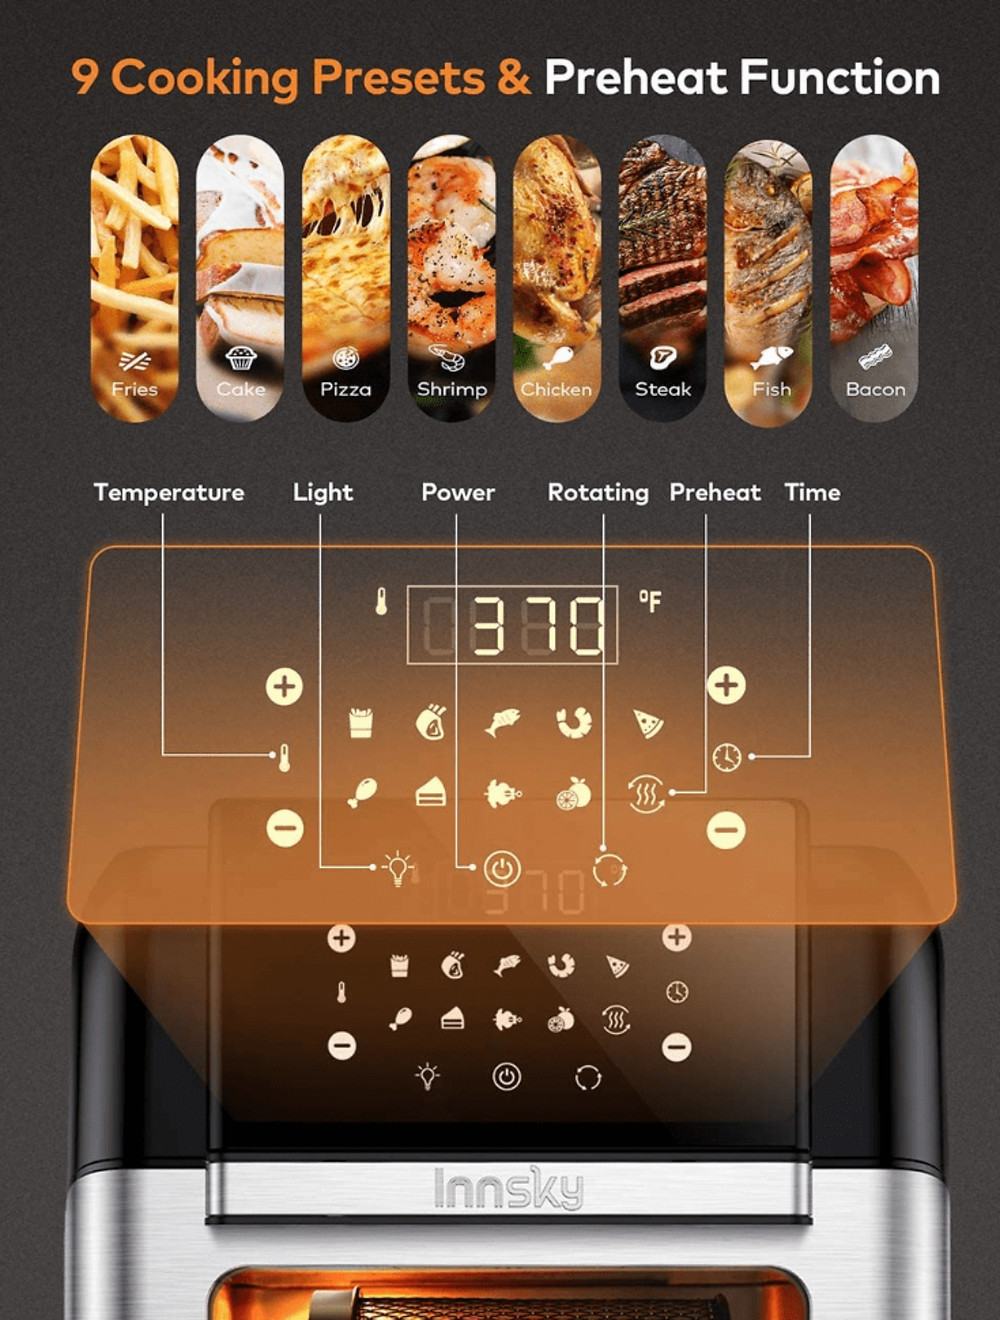 Controls and Presets on the Innsky Air Fryer 10.6 Quarts Rotisserie Oven